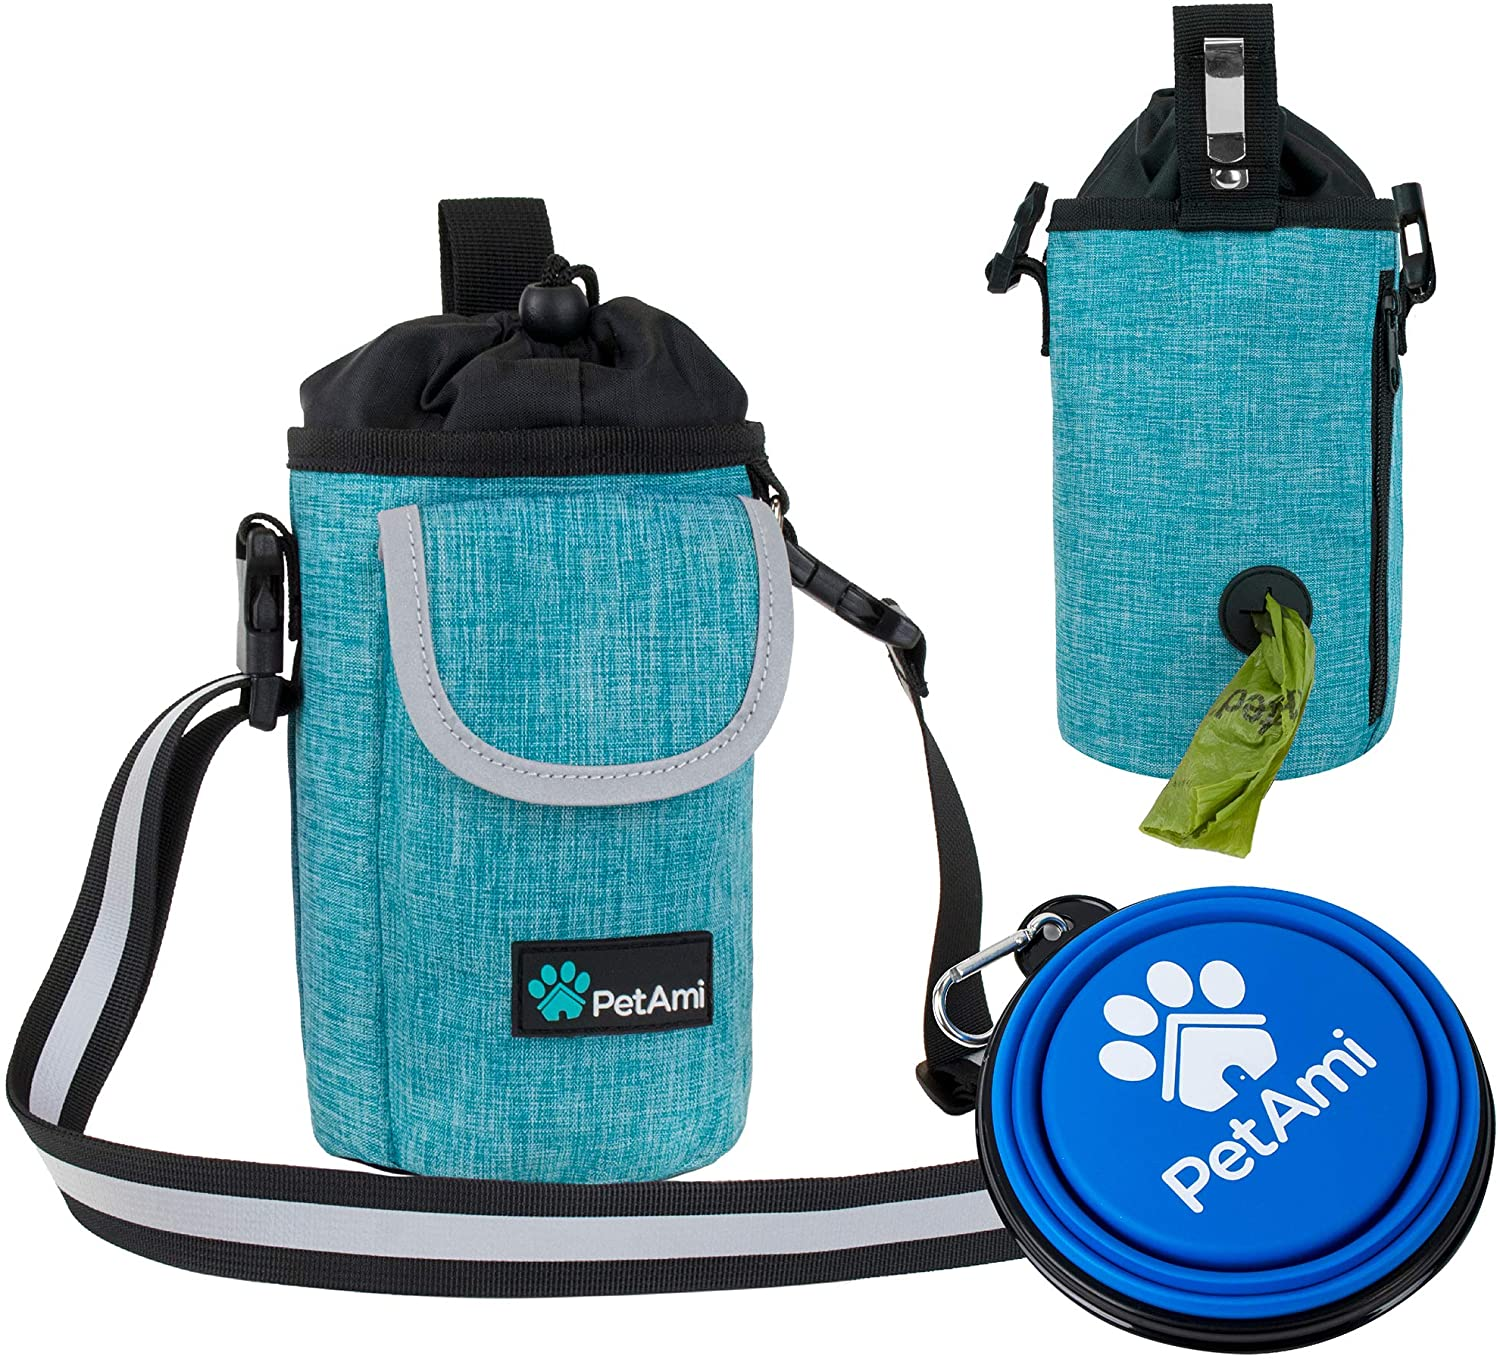 PetAmi Dog Treat Pouch with Large Front Pocket | Dog Training Pouch Bag with Waist Shoulder Strap, Poop Bag Dispenser, Collapsible Bowl | Training Bag for Kibbles, Pet Toys | 3 Ways to Wear